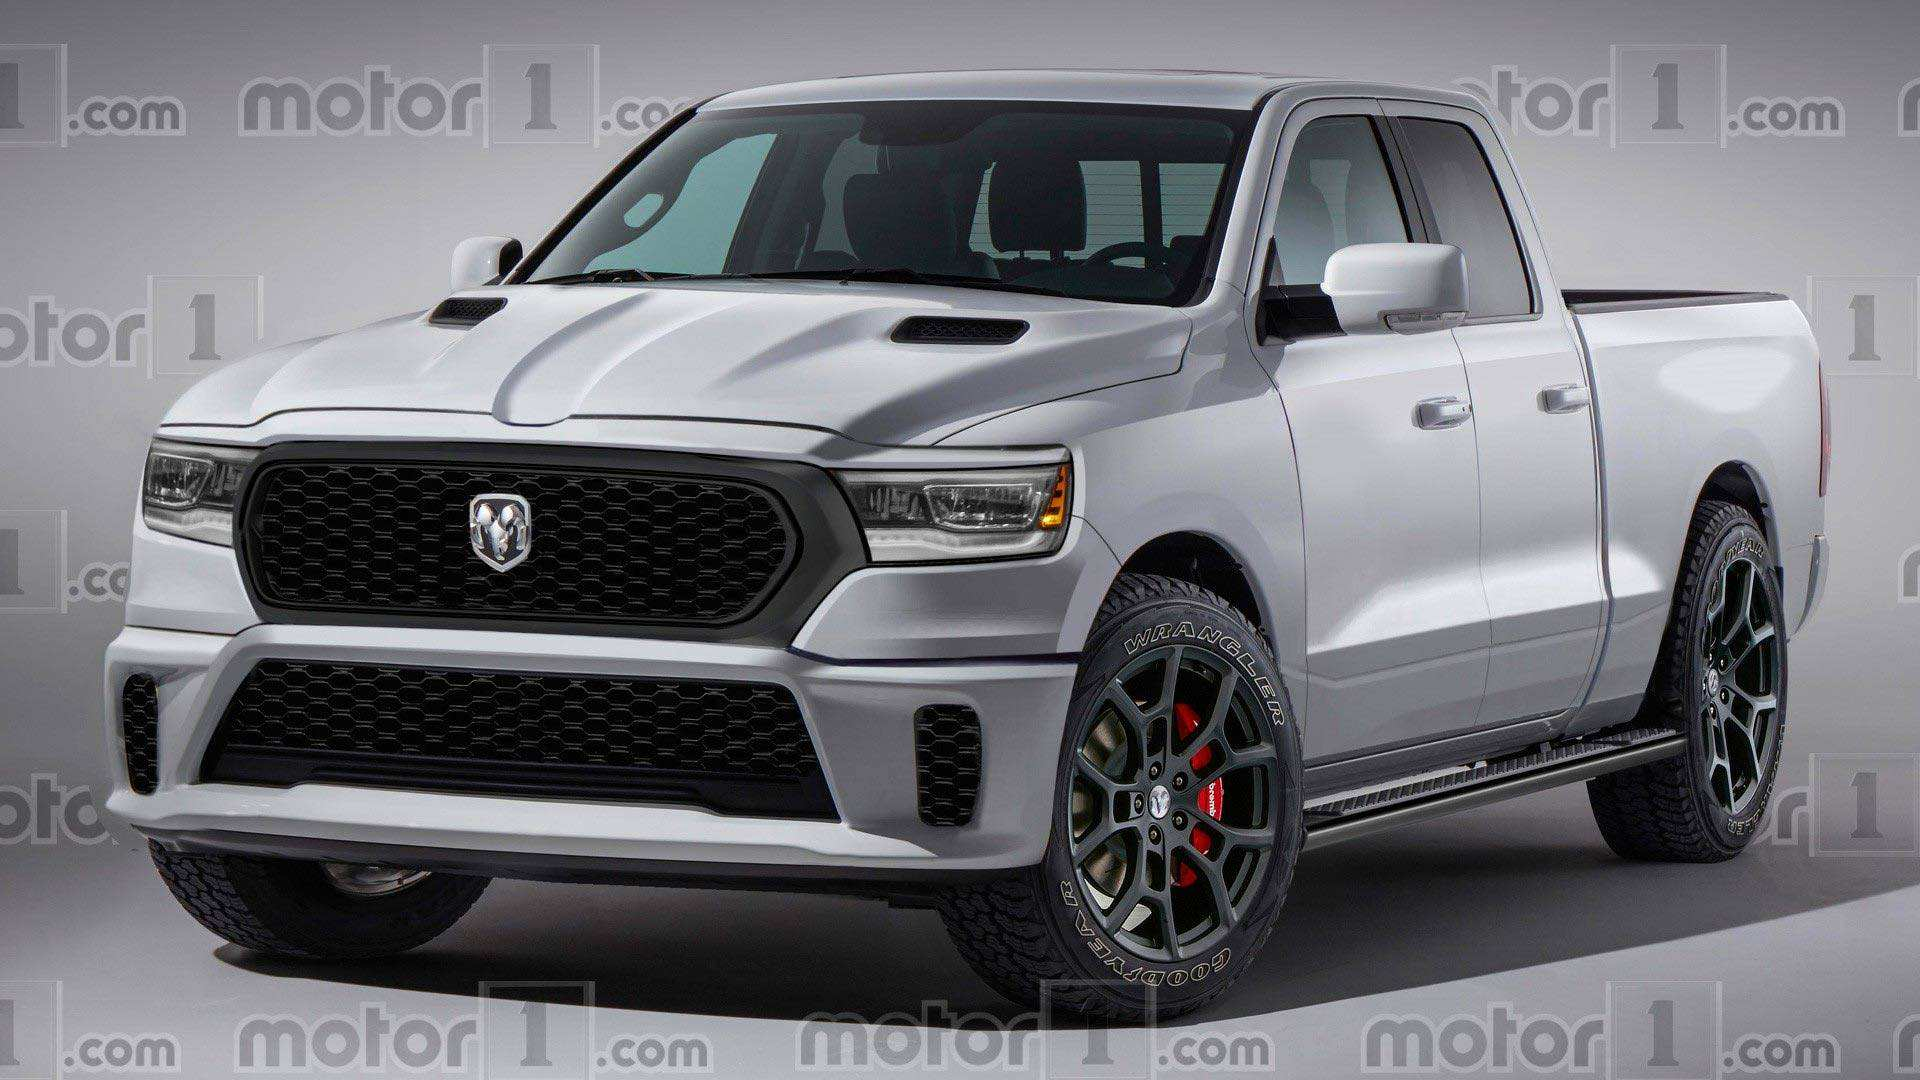 64 All New 2020 RAM 1500 Price And Release Date